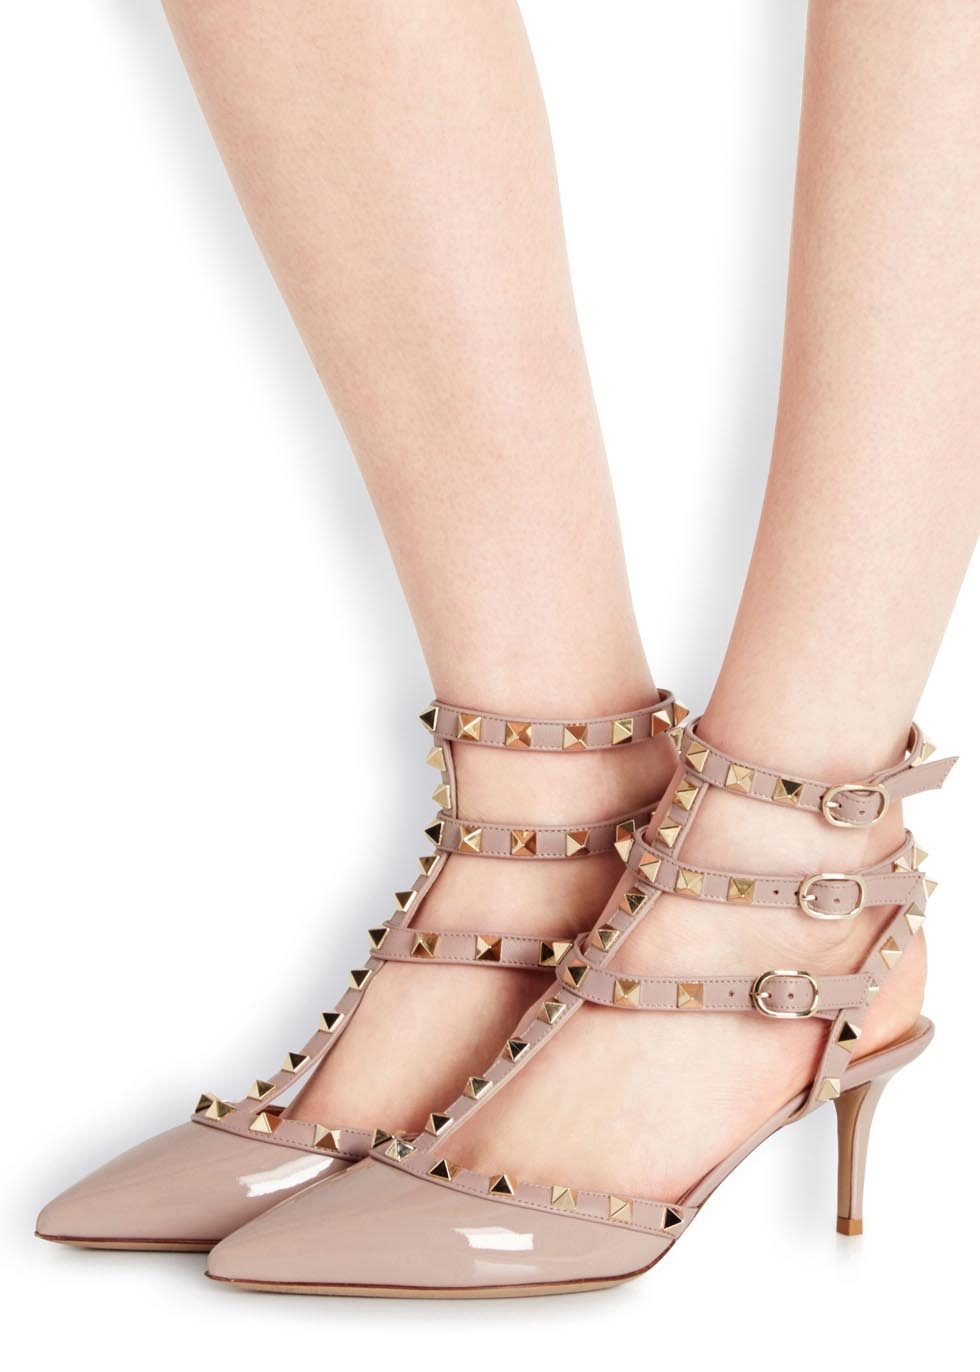 71d309cf8e0a Valentino Rockstud 65 Blush Patent Leather Pumps in Pink - Lyst